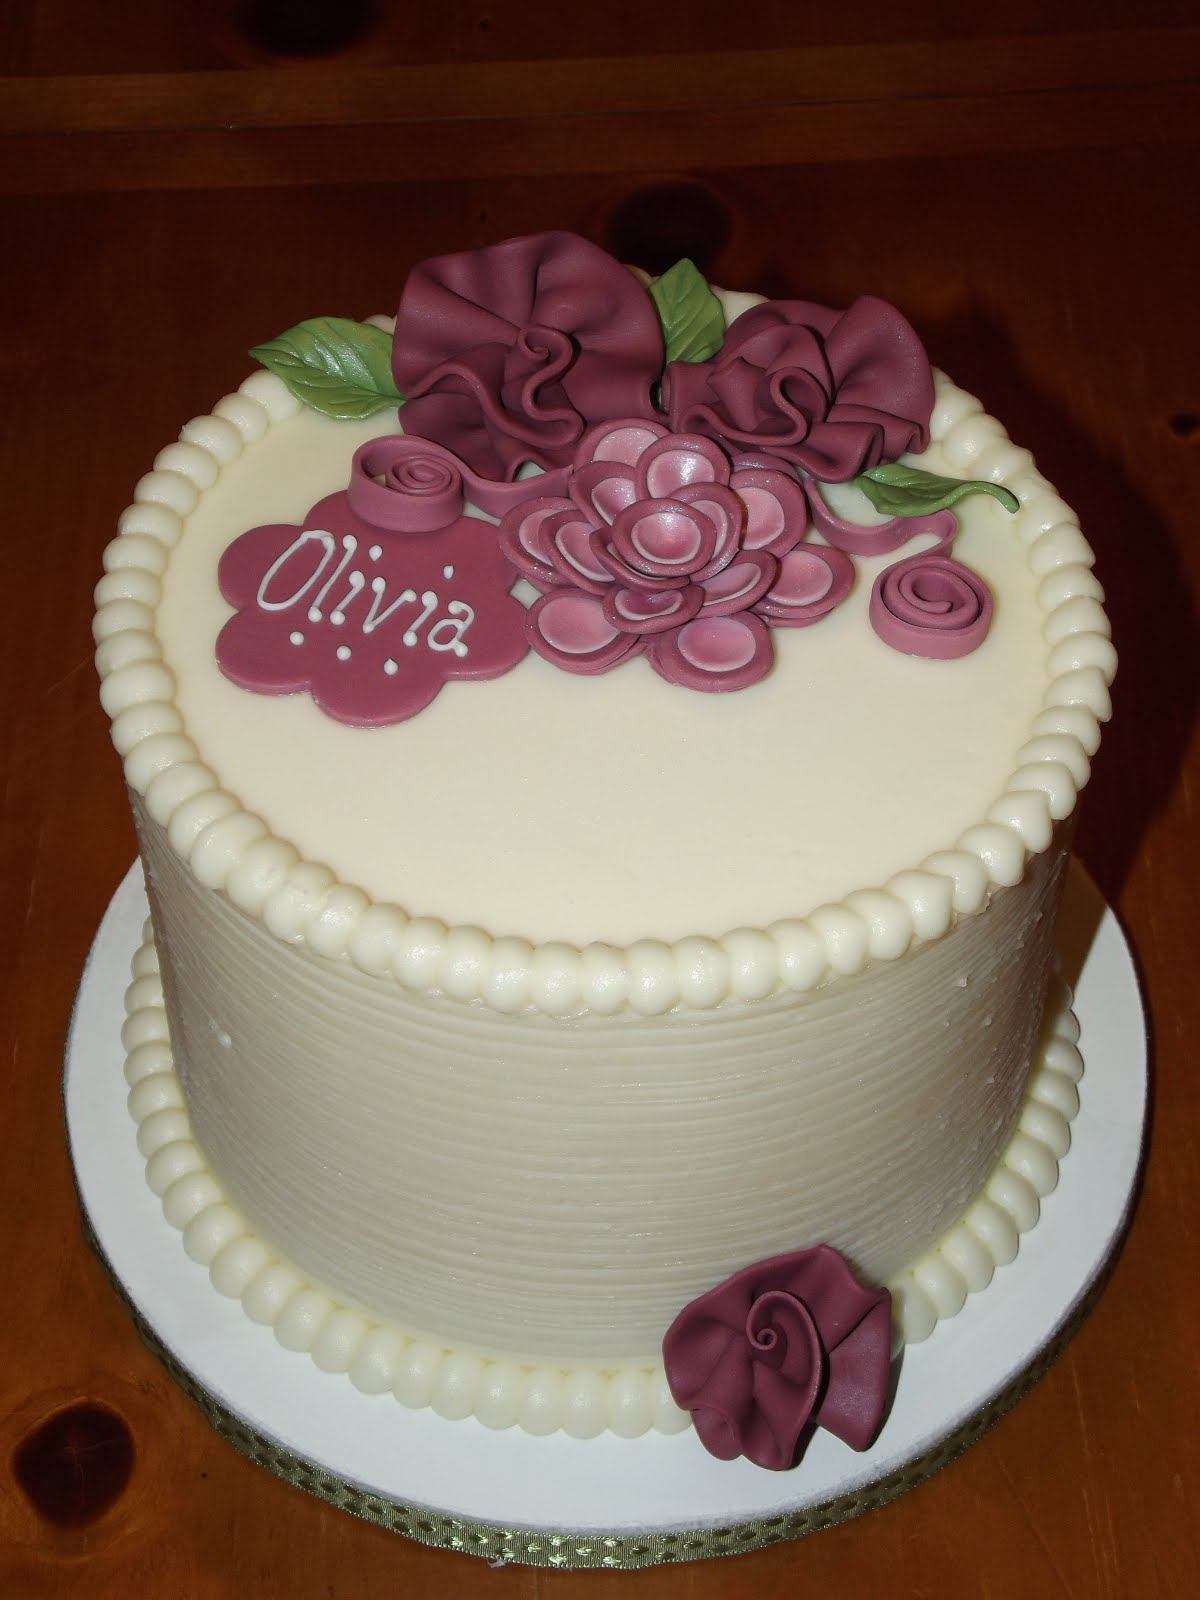 Suzy s Sweet Shoppe: Simple but Pretty Birthday Cake